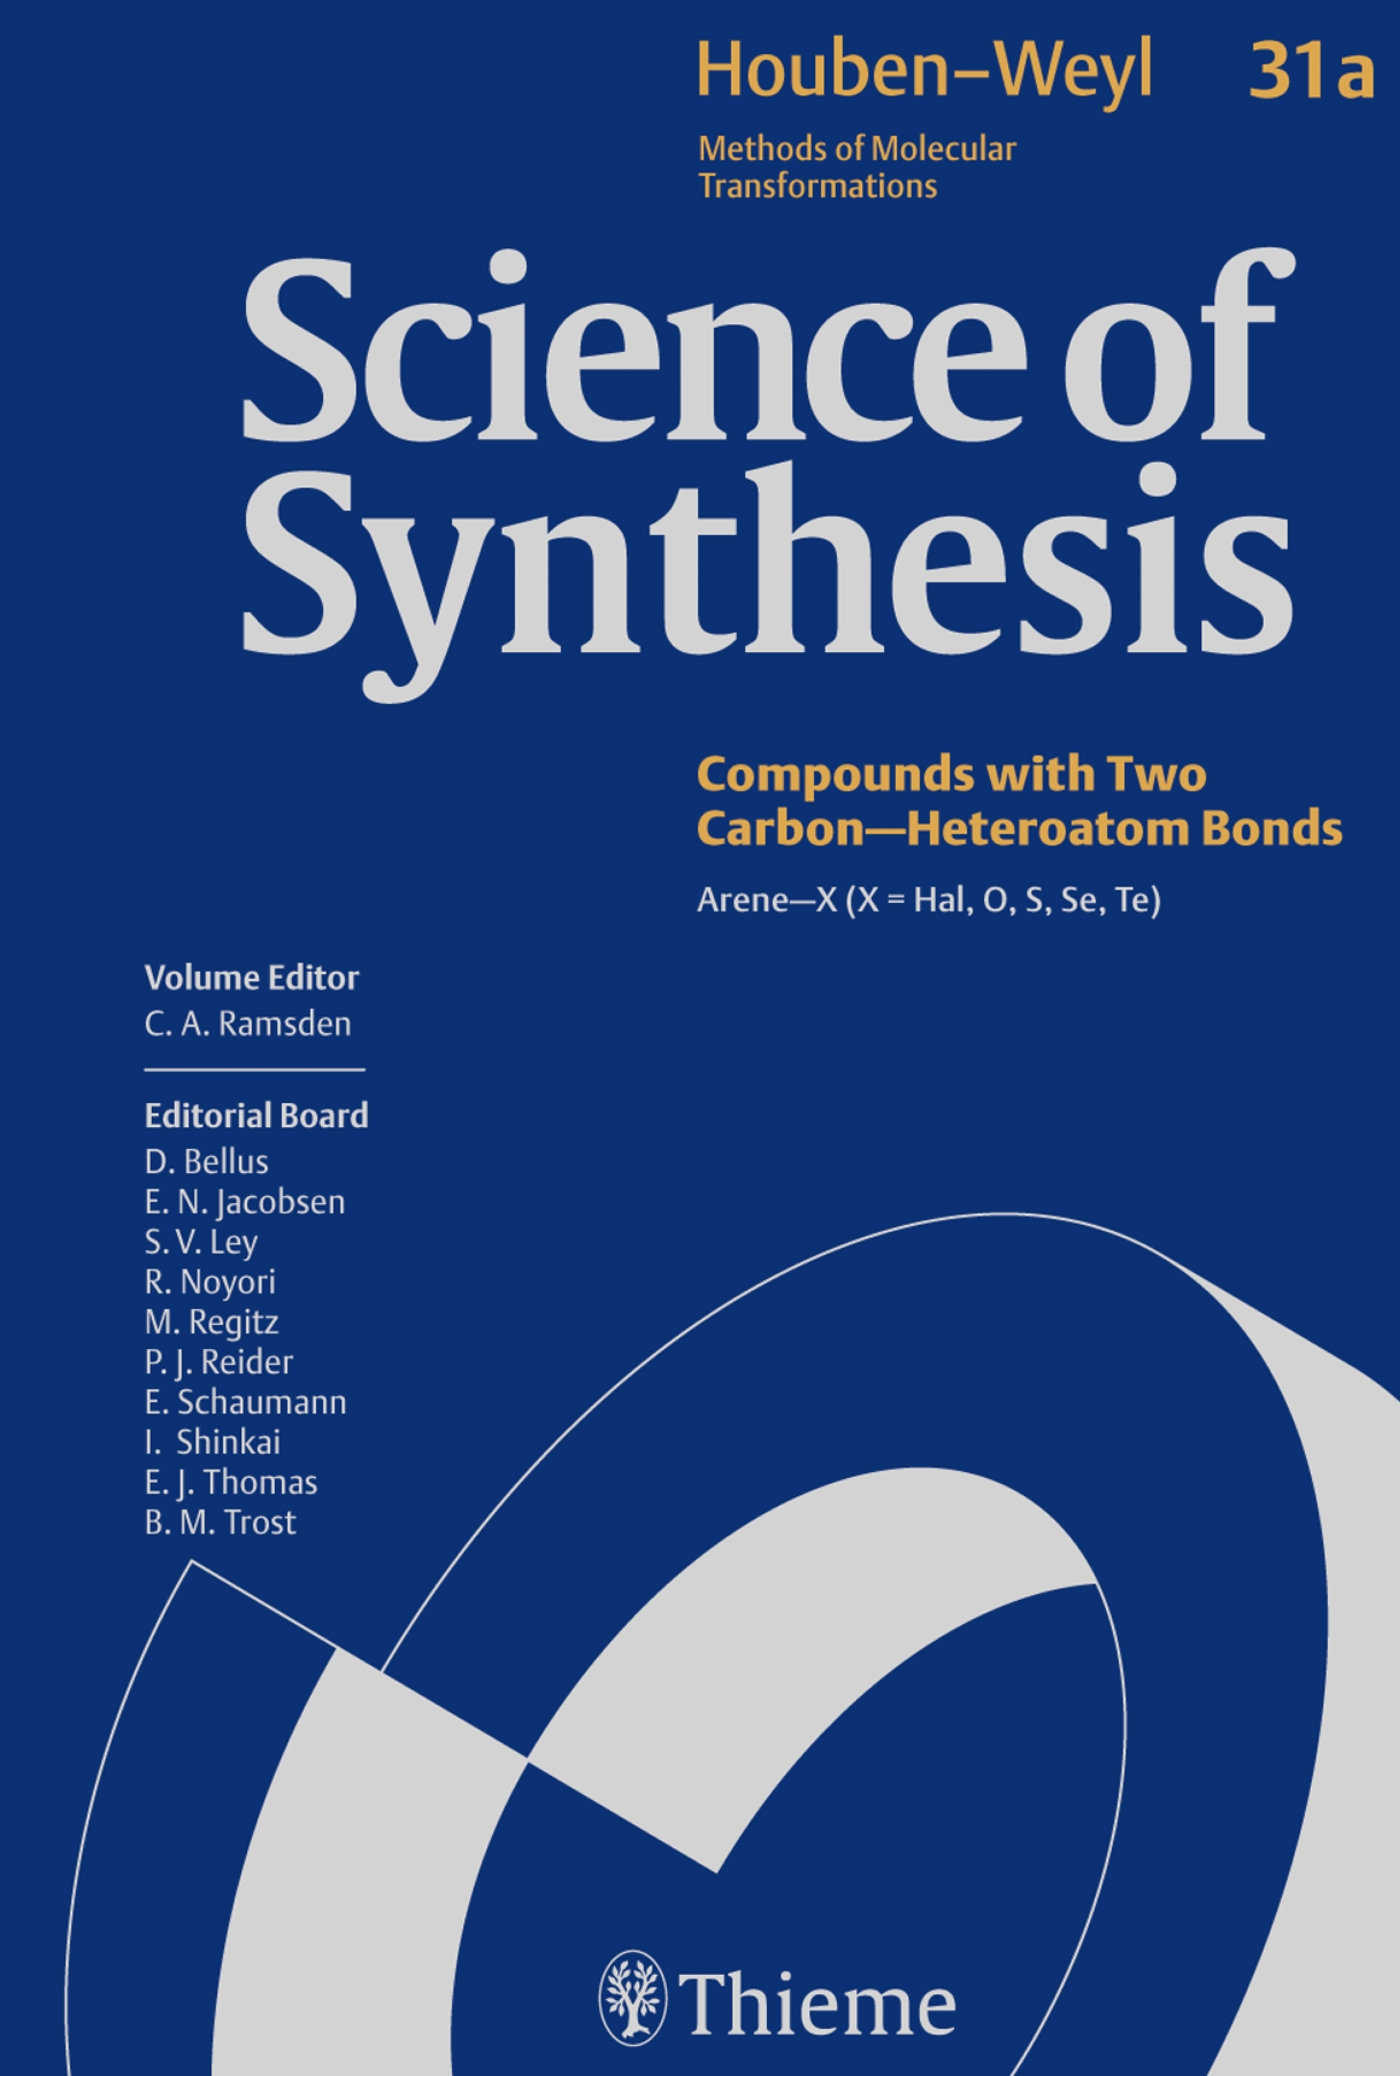 Science of Synthesis: Houben-Weyl Methods of Molecular Transformations  Vol. 31a